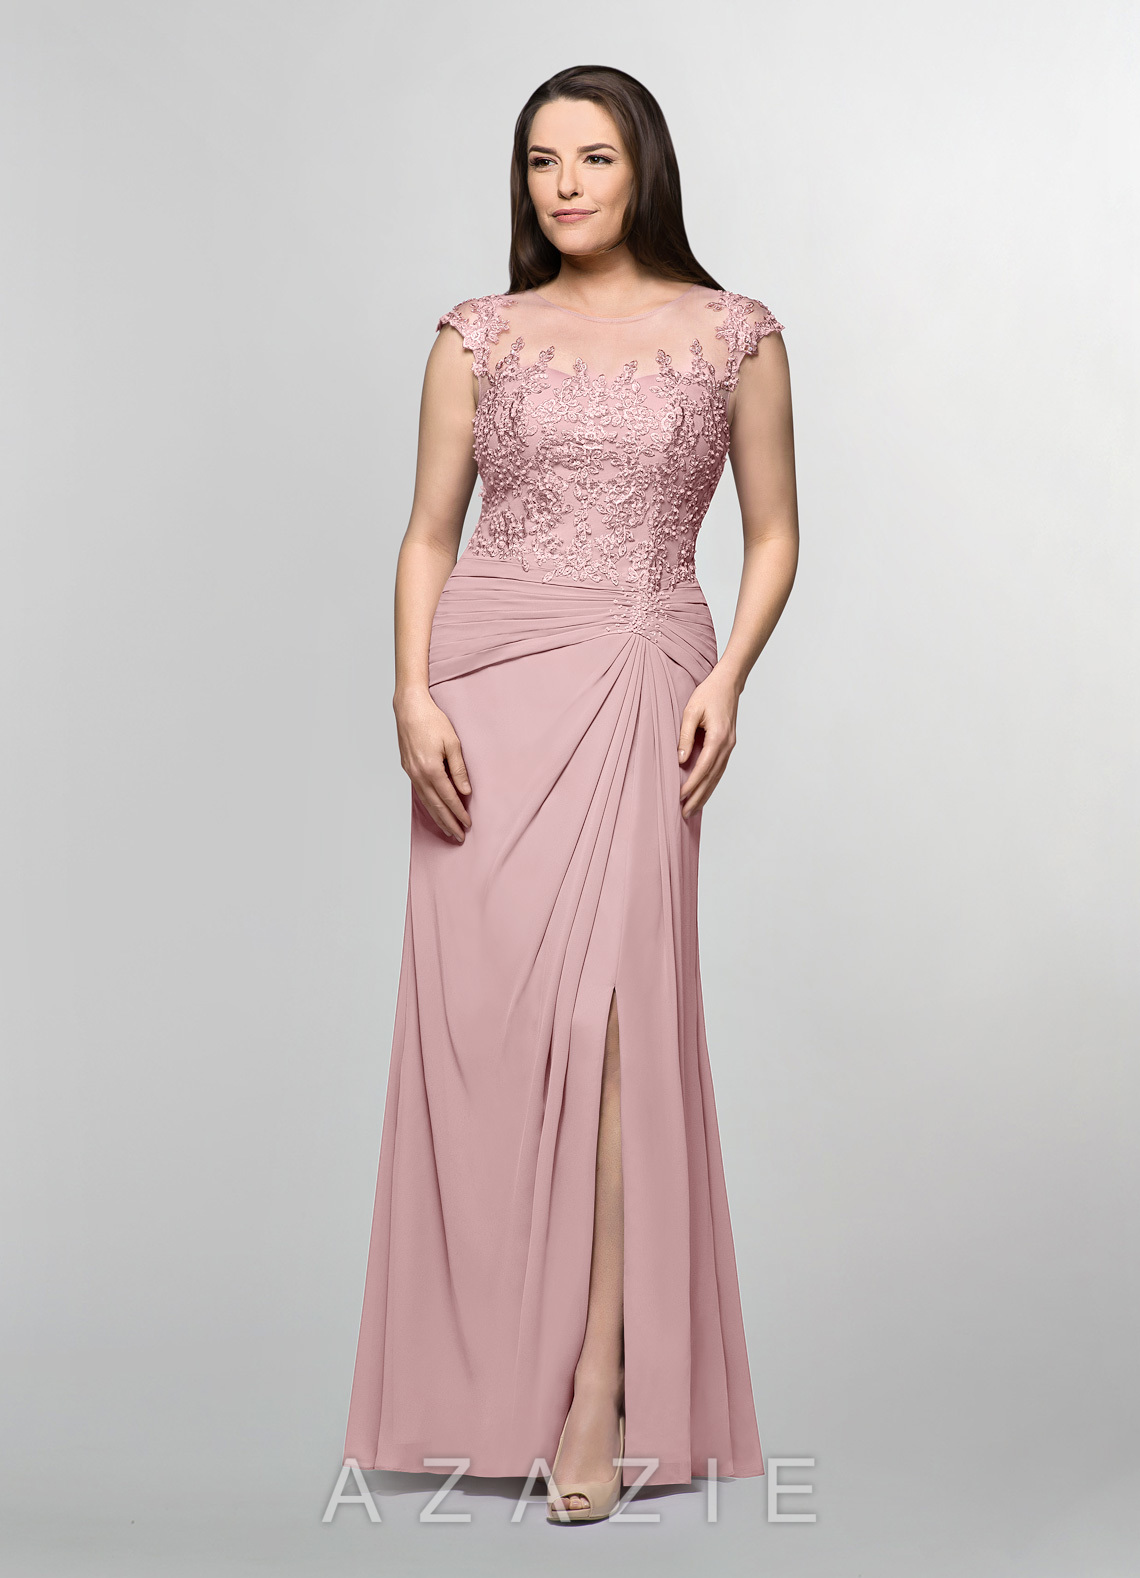 6ba2131a00a Azazie Libby MBD Mother Of The Bride Dress